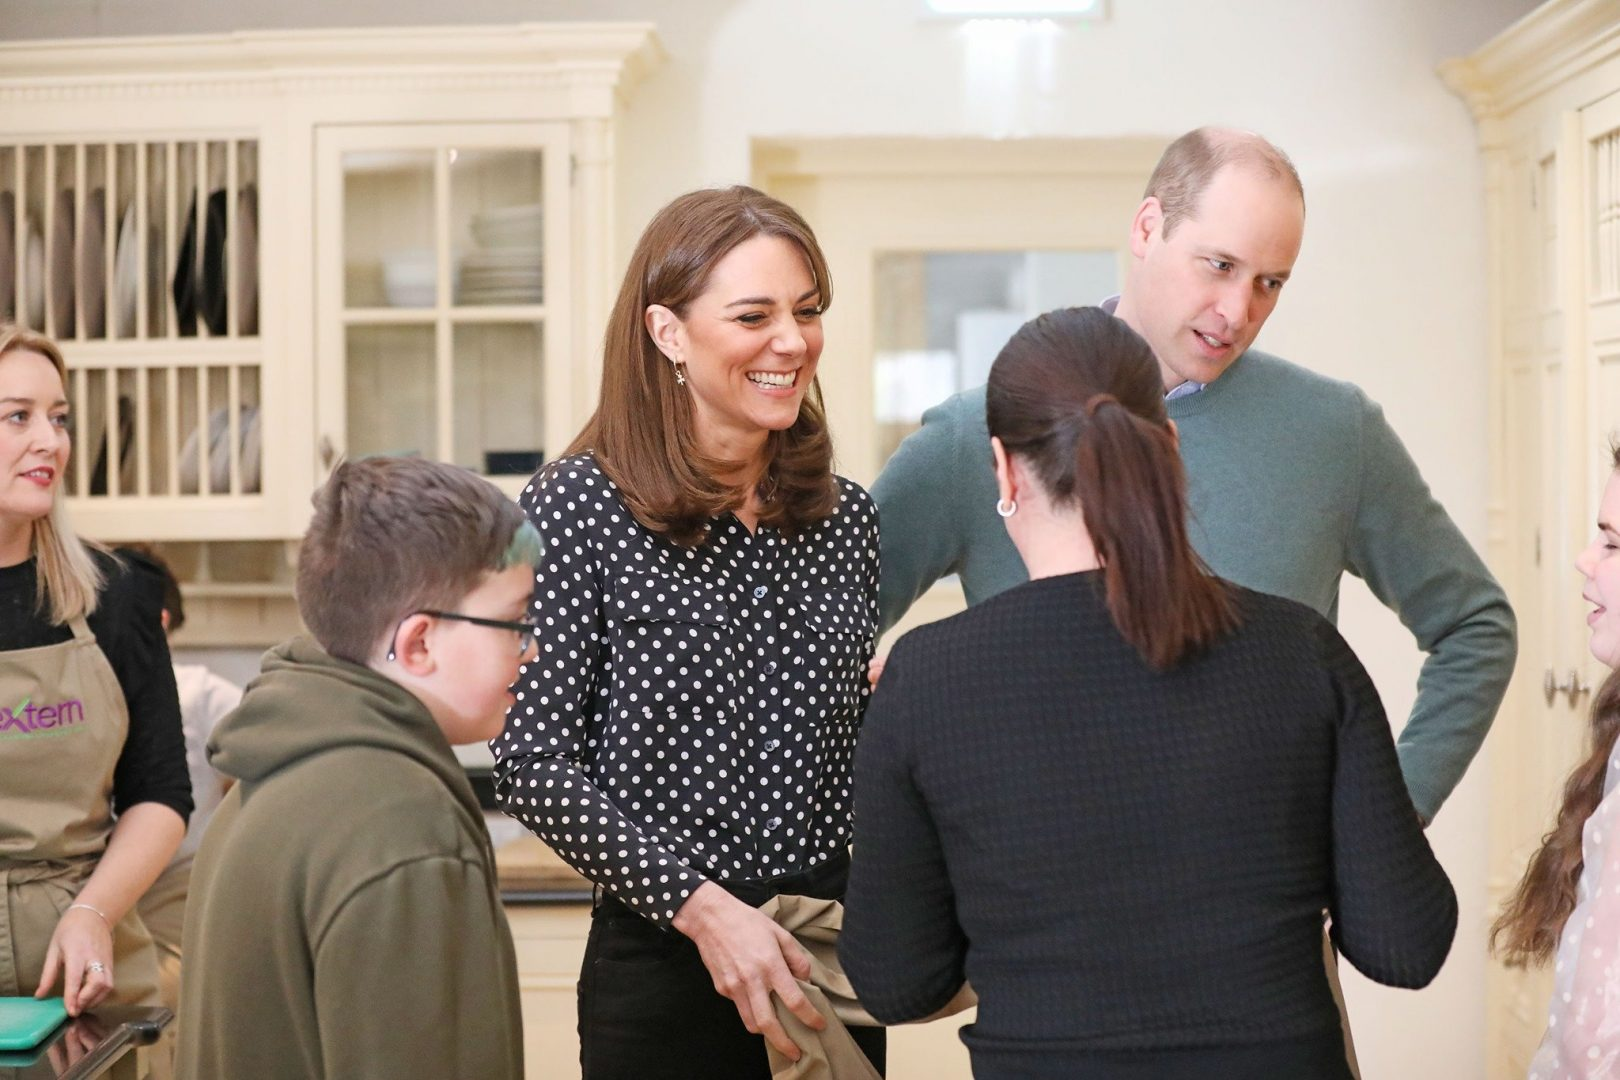 William and Kate visiting the charity Extern in Kildare.